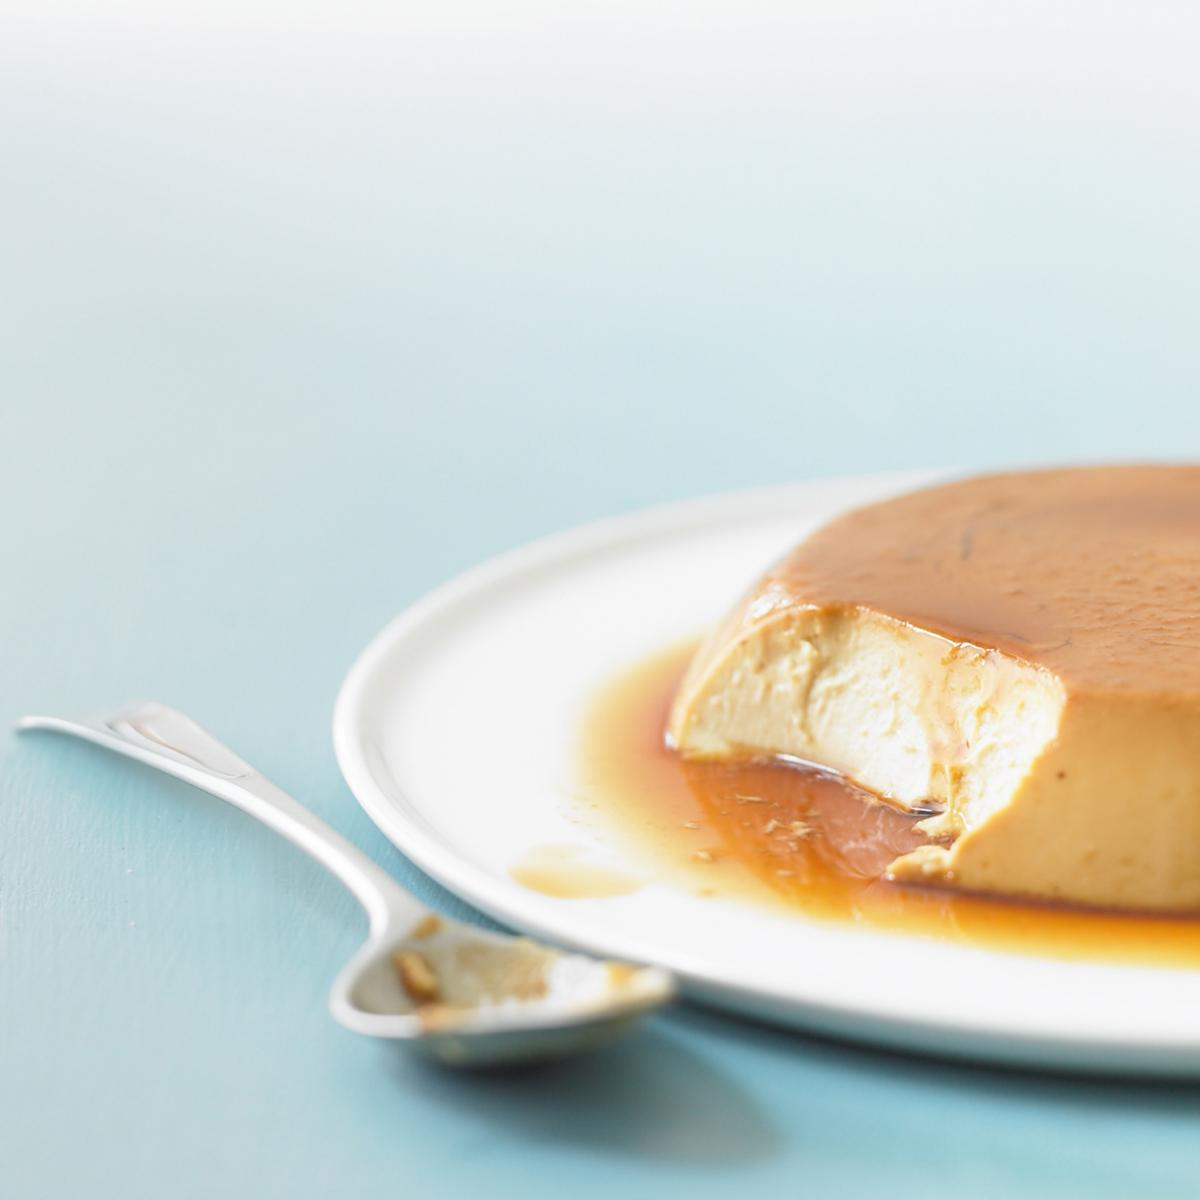 A picture of Delia's Cheats' Creme Caramel recipe